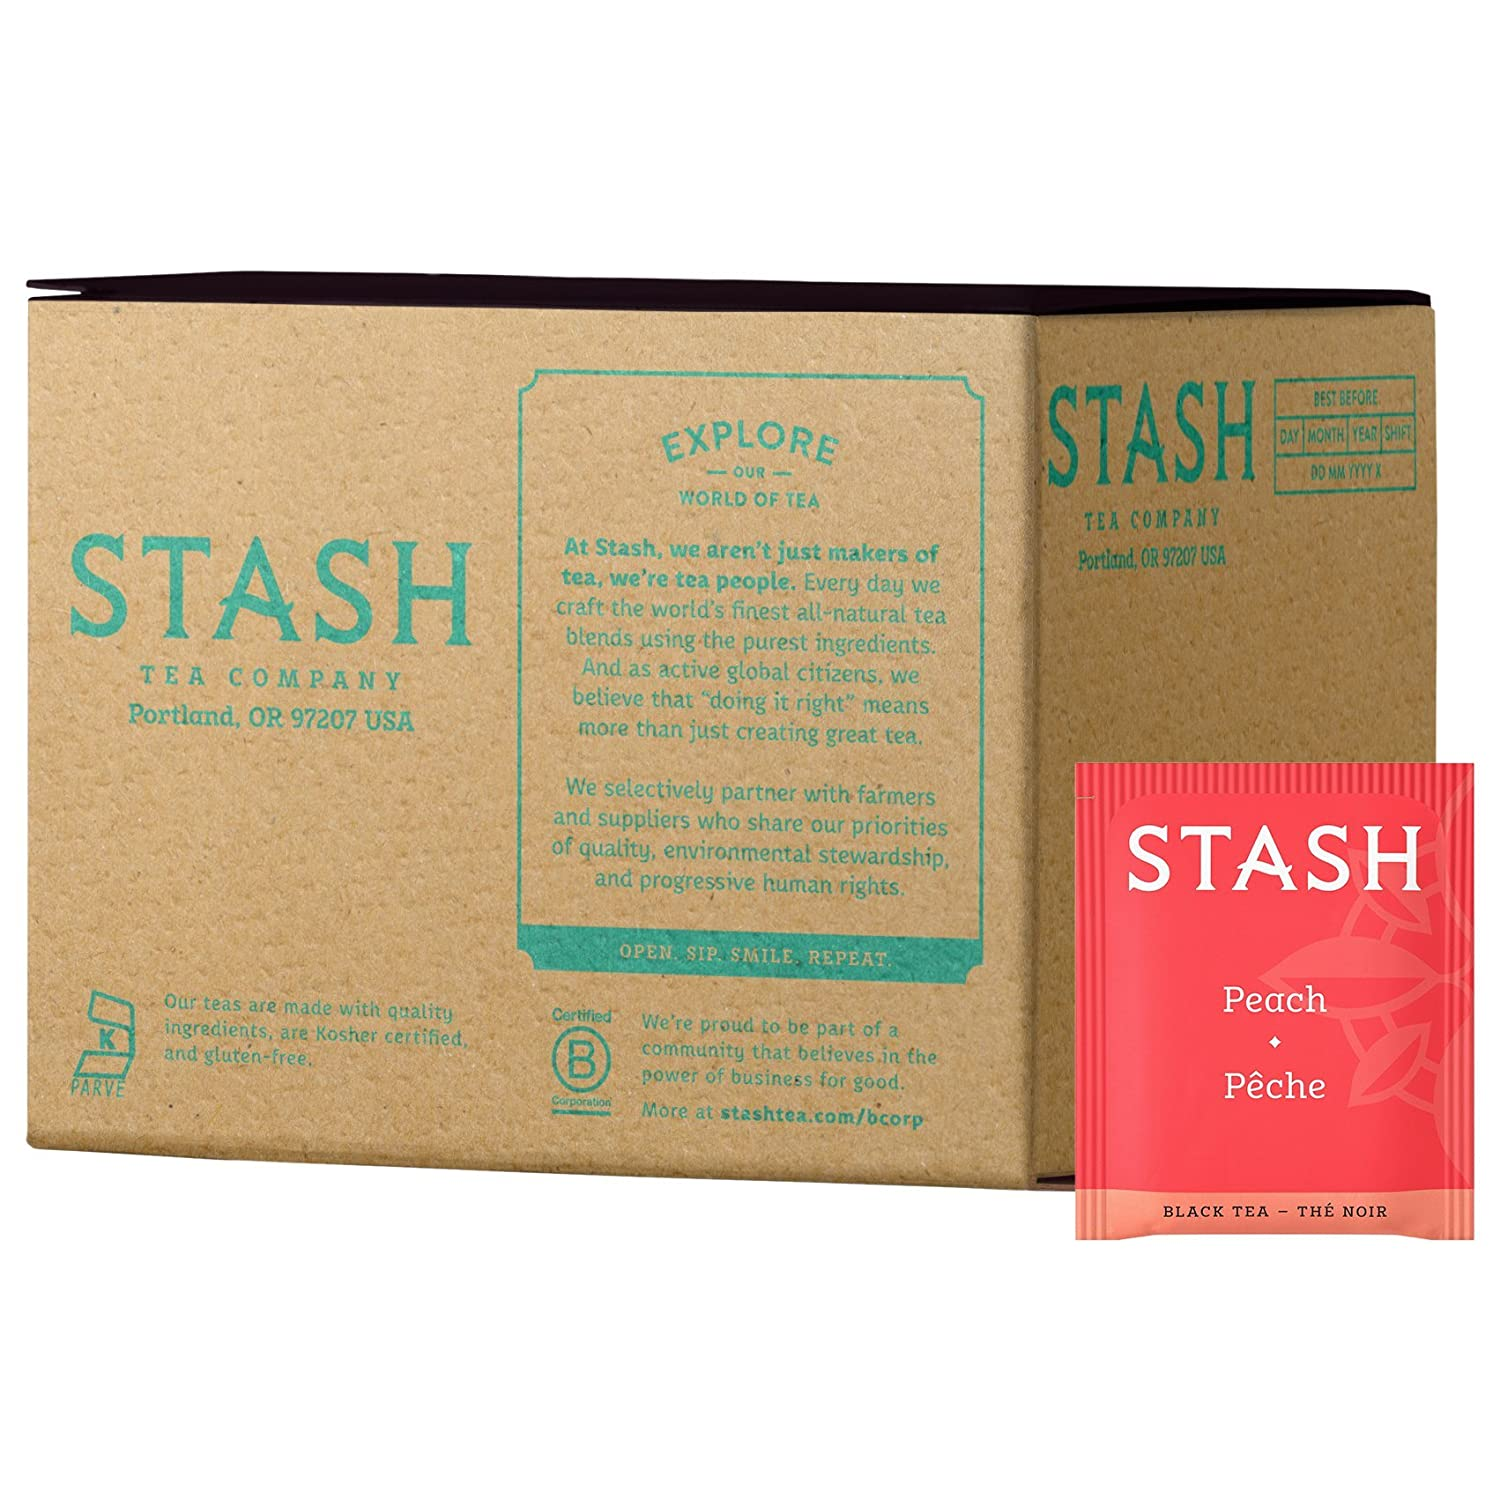 Stash Tea Peach Black Tea 100 Count Box of Tea Bags in Foil (packaging may vary) Individual Black Tea Bags for Use in Teapots Mugs or Cups, Brew Hot Tea or Iced Tea